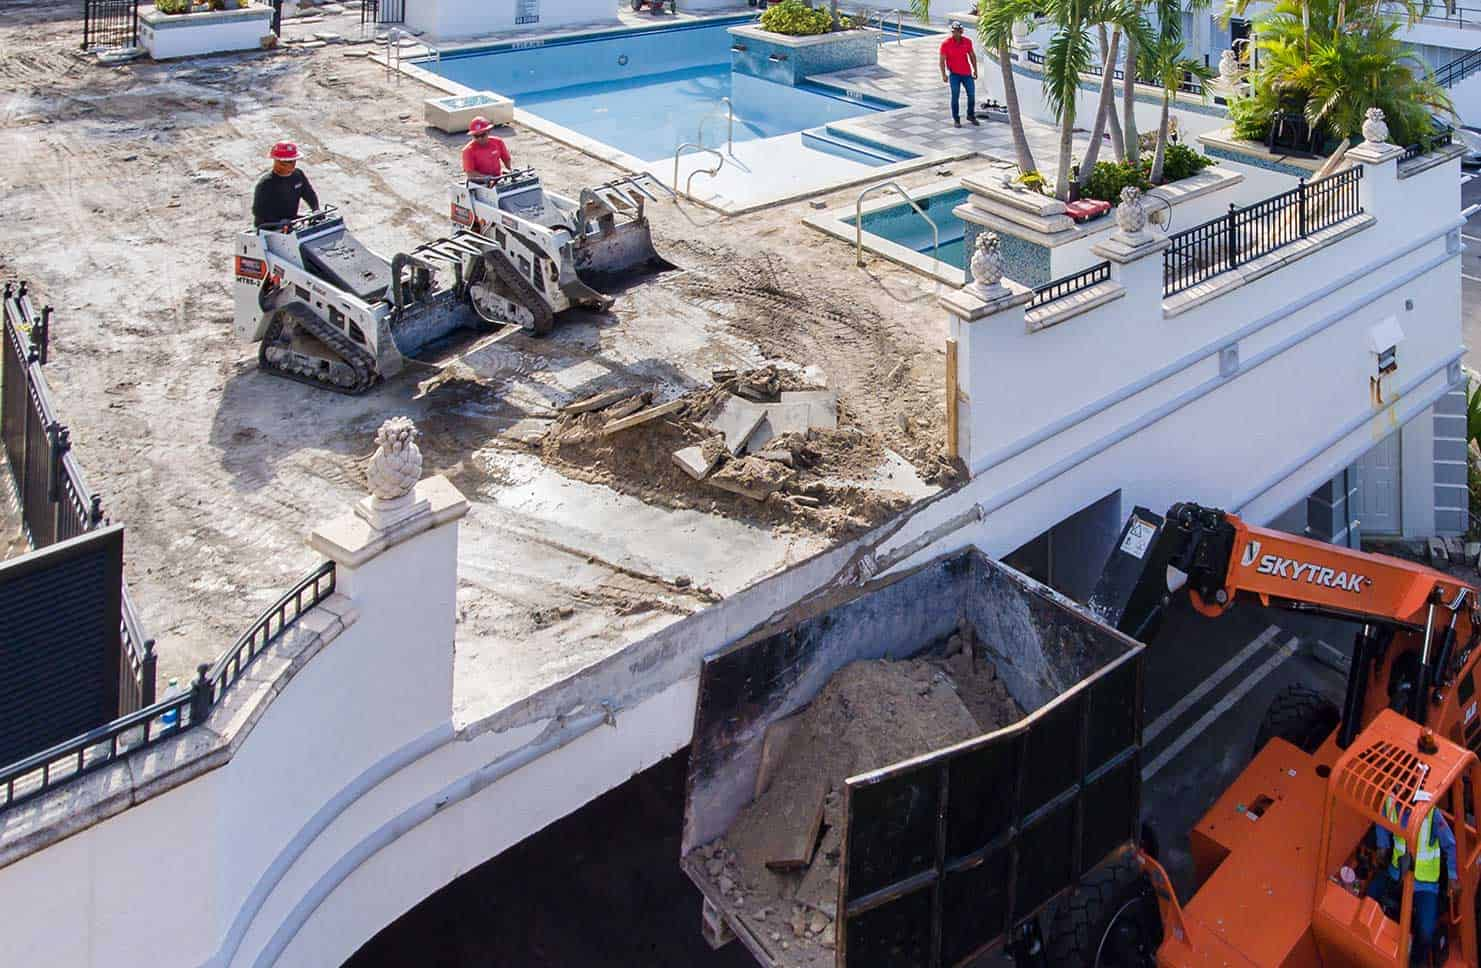 Workers Removing dirt and debris off of rooftop pool deck